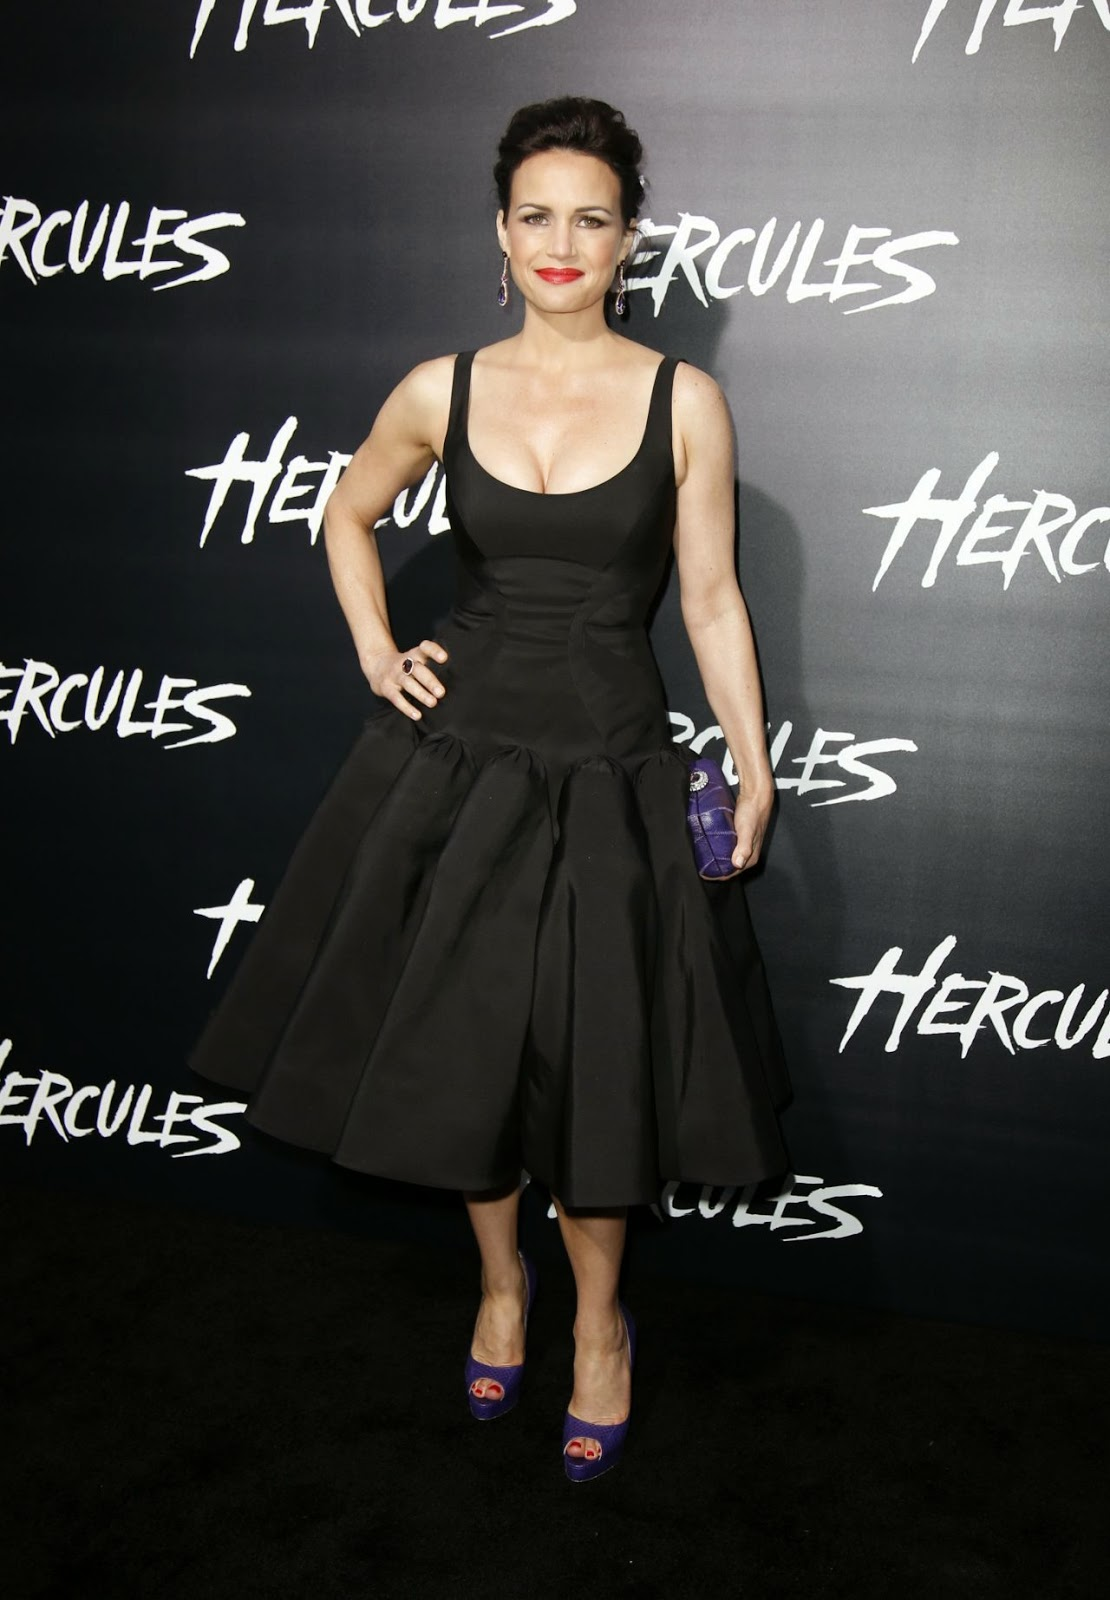 Carla Gugino in a black Zac Posen dress and purple peep-toes at the 'Hercules' LA premiere